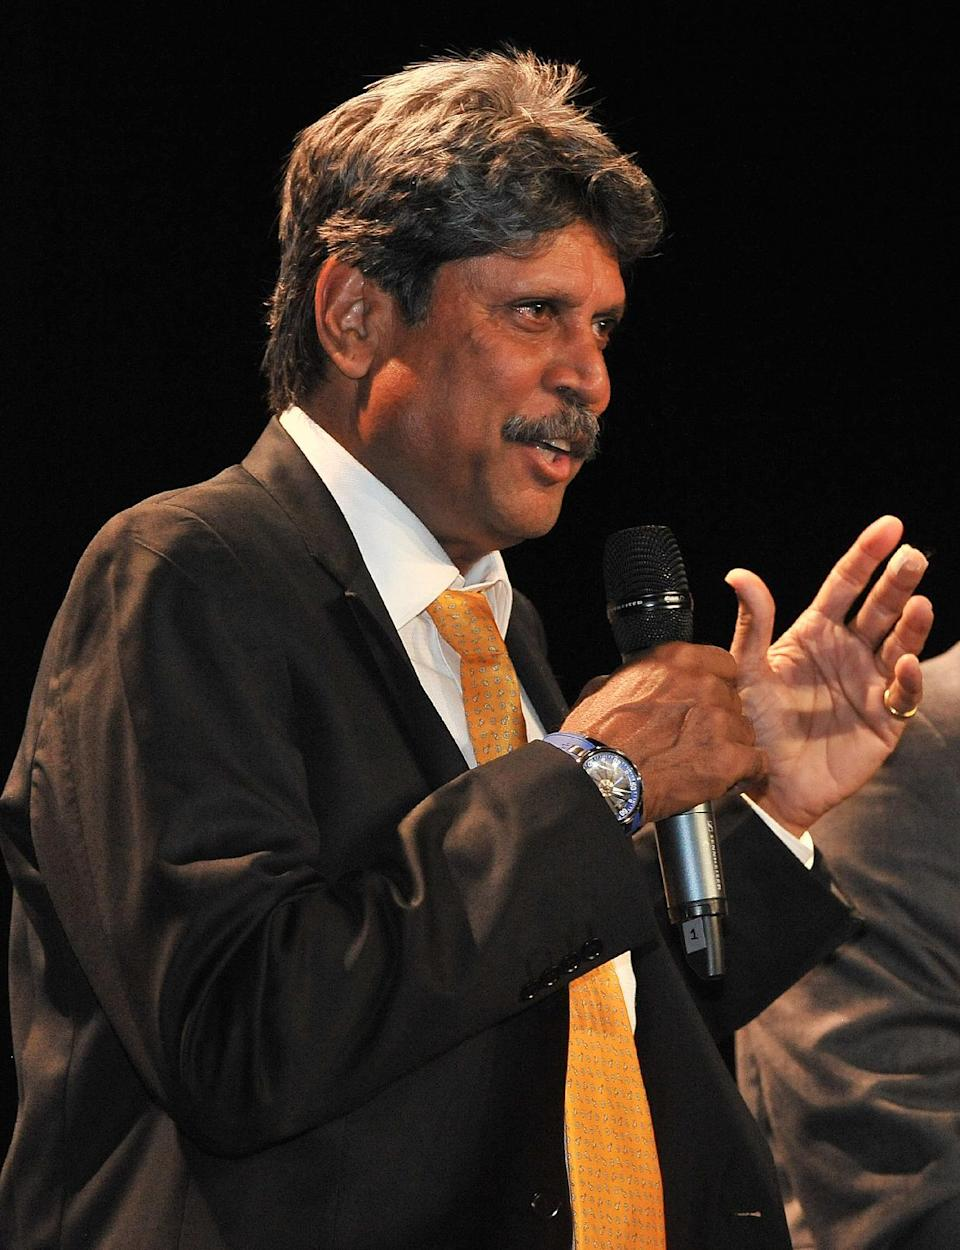 Indian cricket legend Kapil Dev says it is difficult to predict a World Cup winner (AFP Photo/Paul Crock)